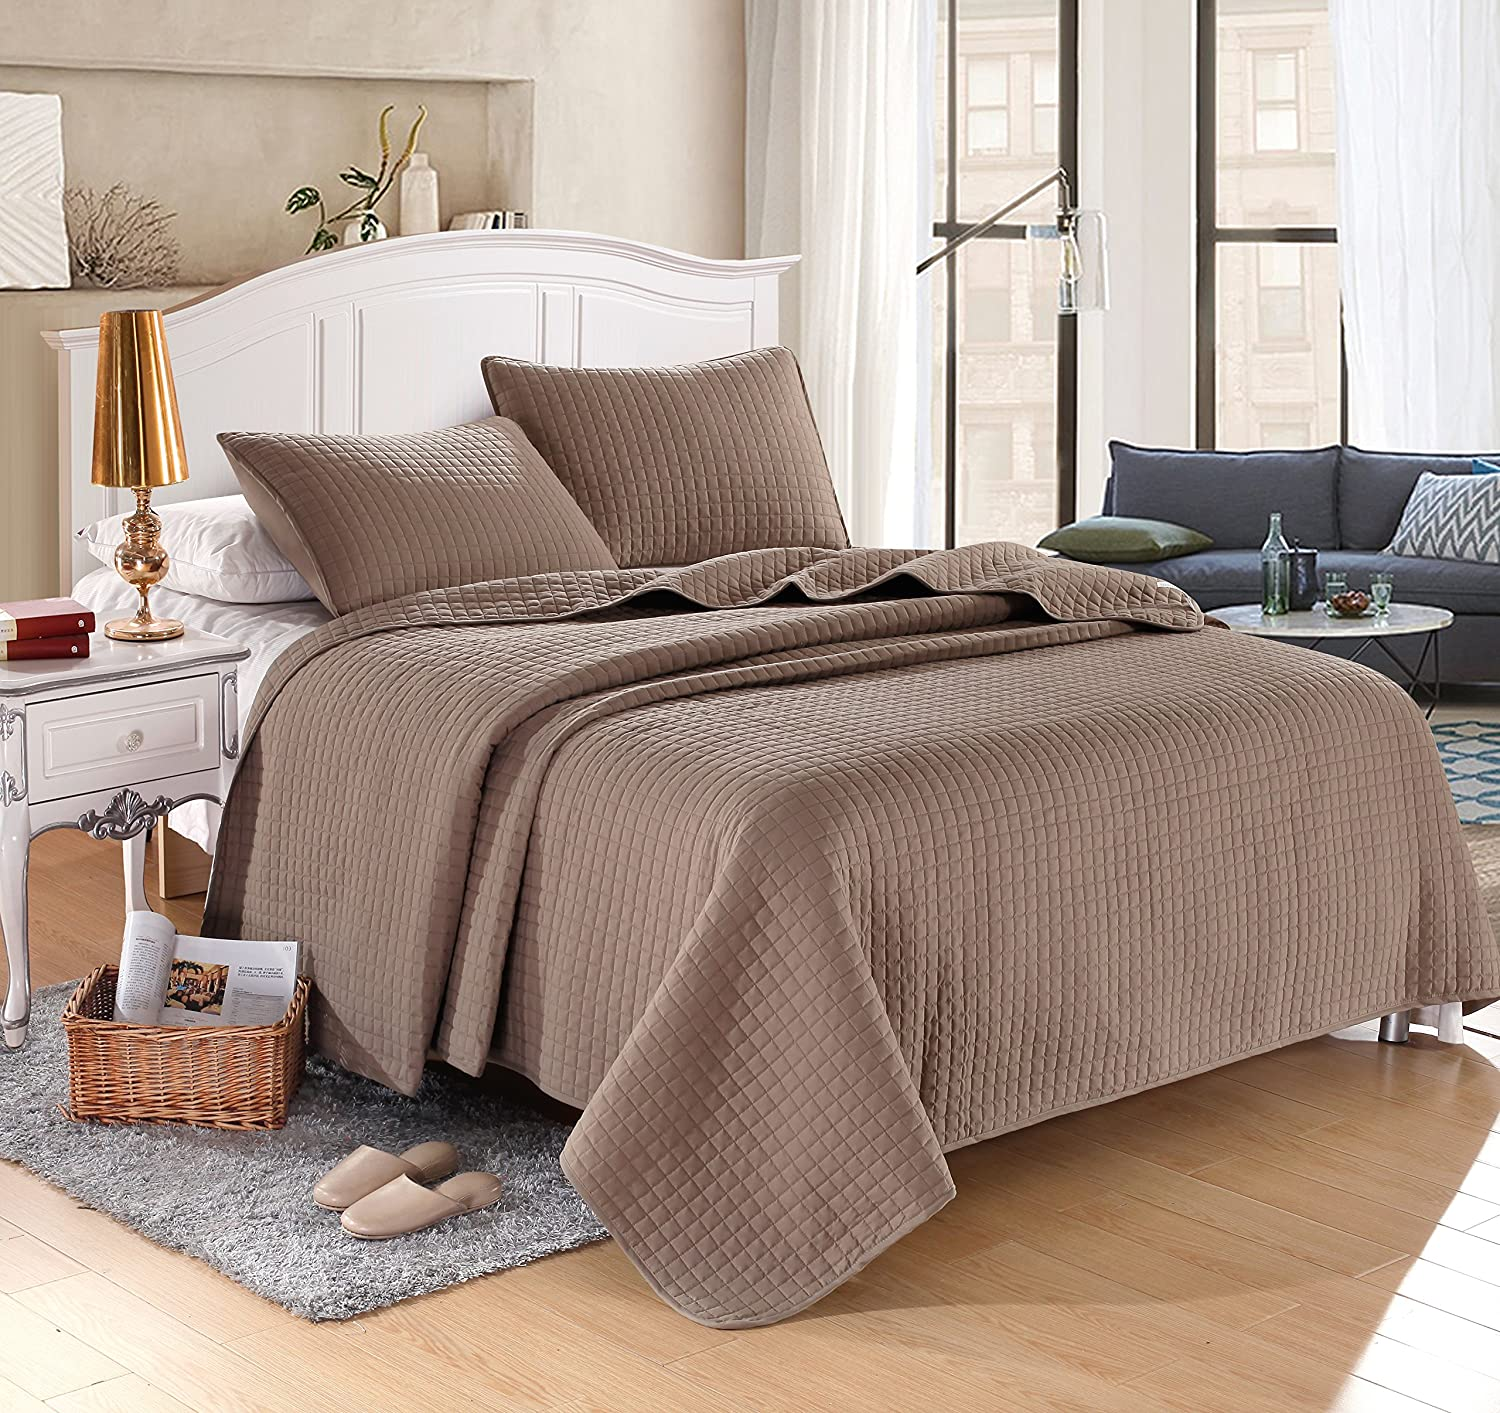 (King (96x102), Taupe) KING TAUPE Solid colour Quilted Bedspread Coverlet(96